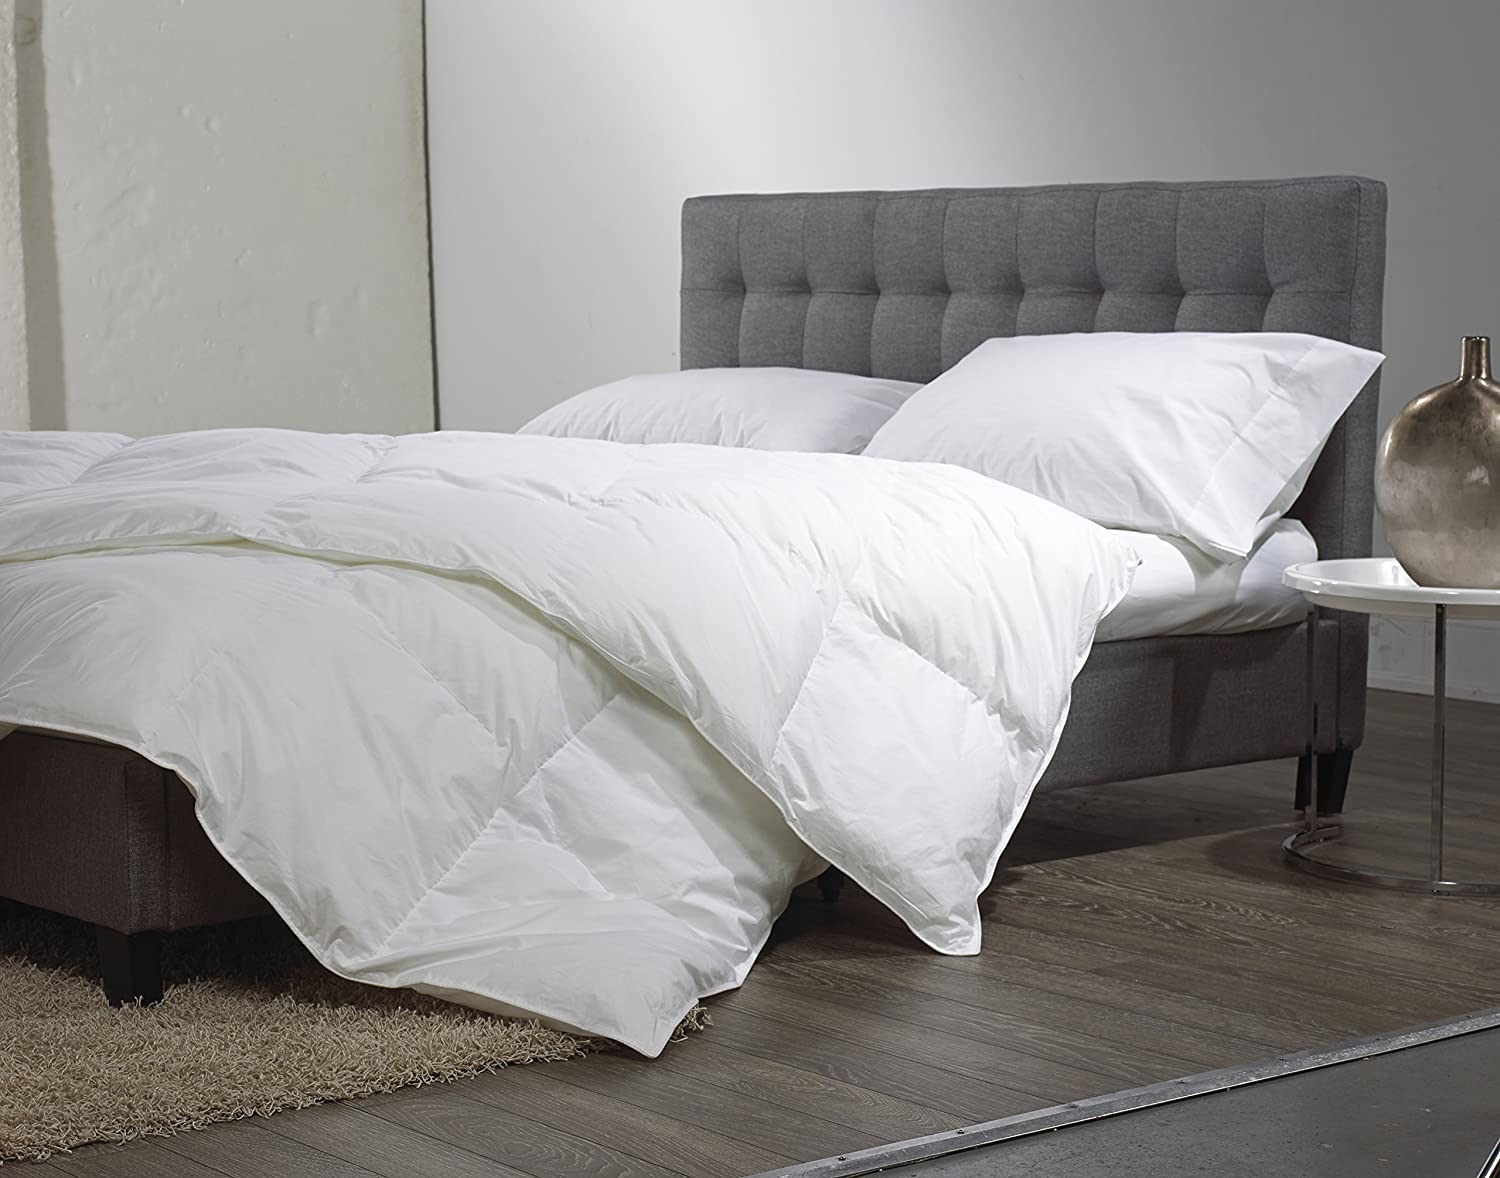 Queen Westex International 195406 Sleep Solutions Canadian White Down and Feather Comforter